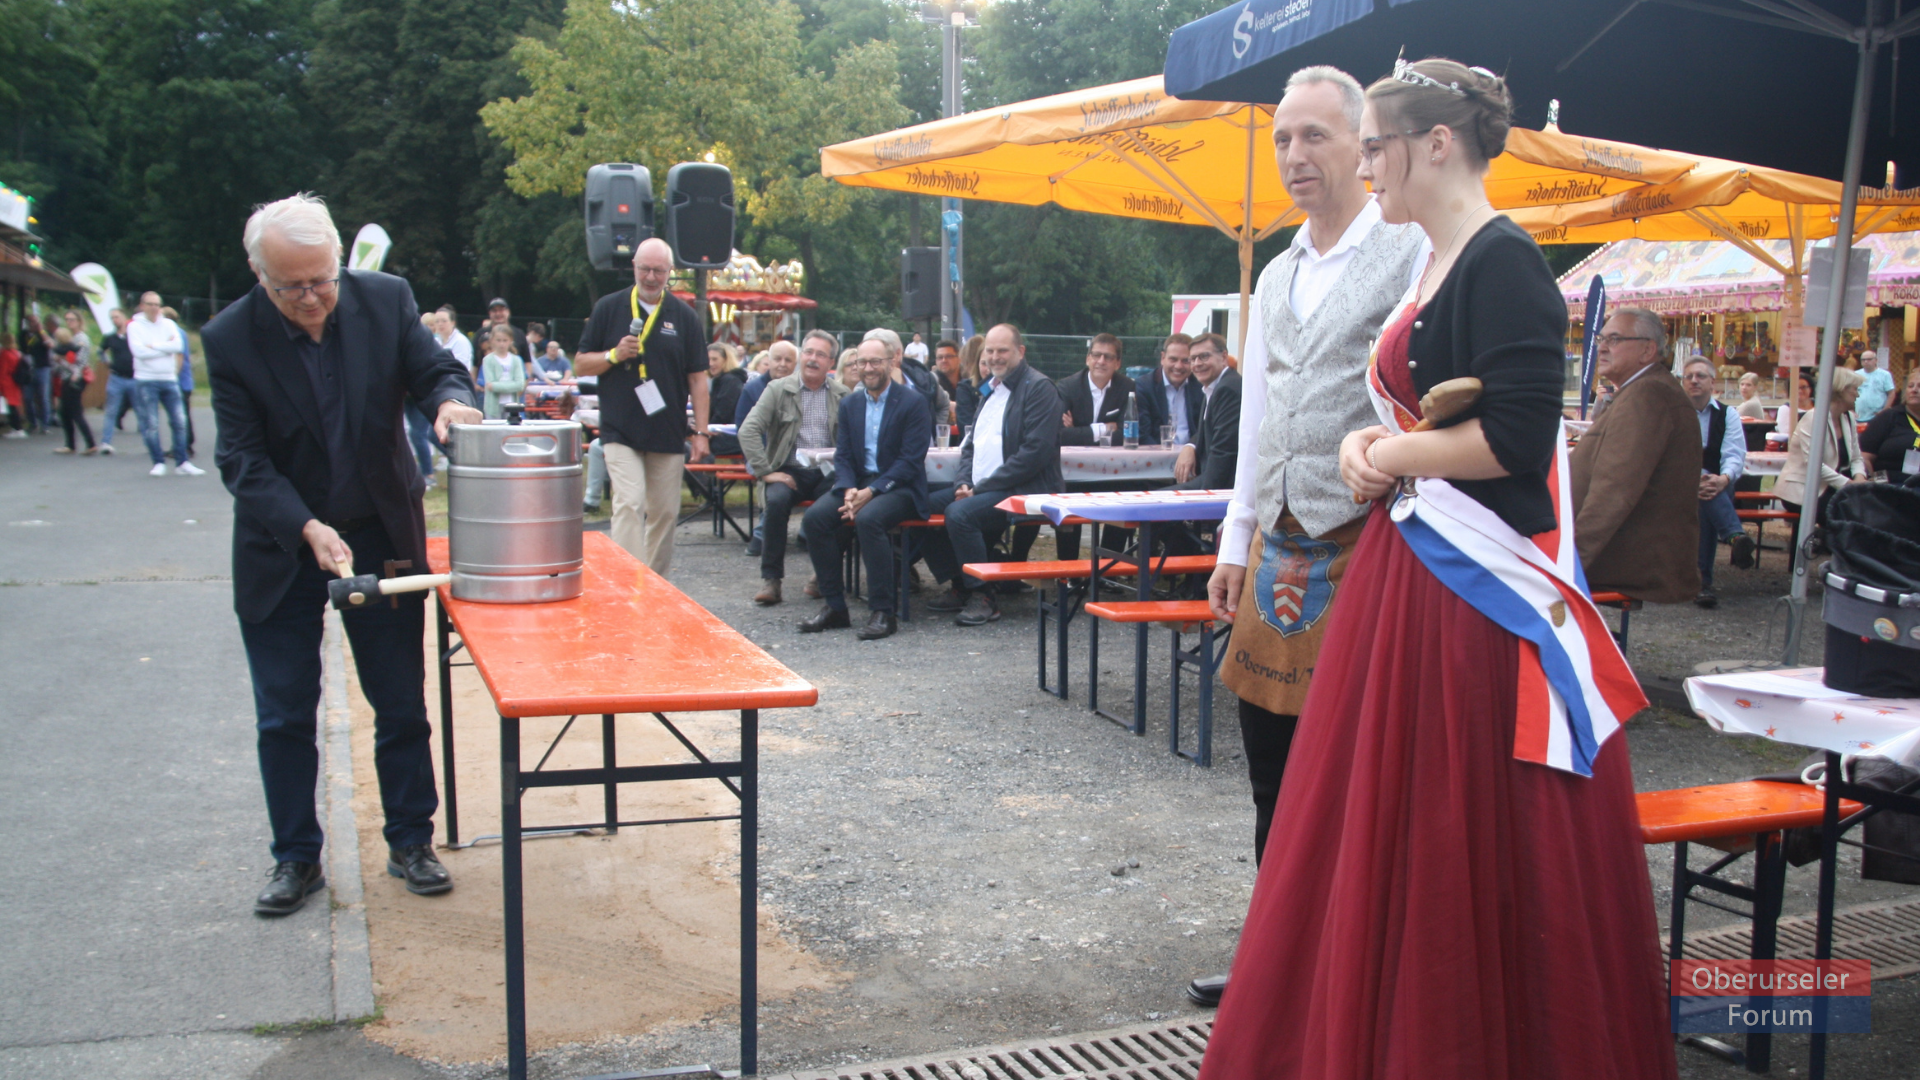 Mayor Hans-Georg Brum opening the Vereinsring 60th anniversary celebrations at the Bleiche in Oberursel, on Thursday, 19th August, 2021, with Fountain Queen Verena I. and her Brunnenmeister Andreas.